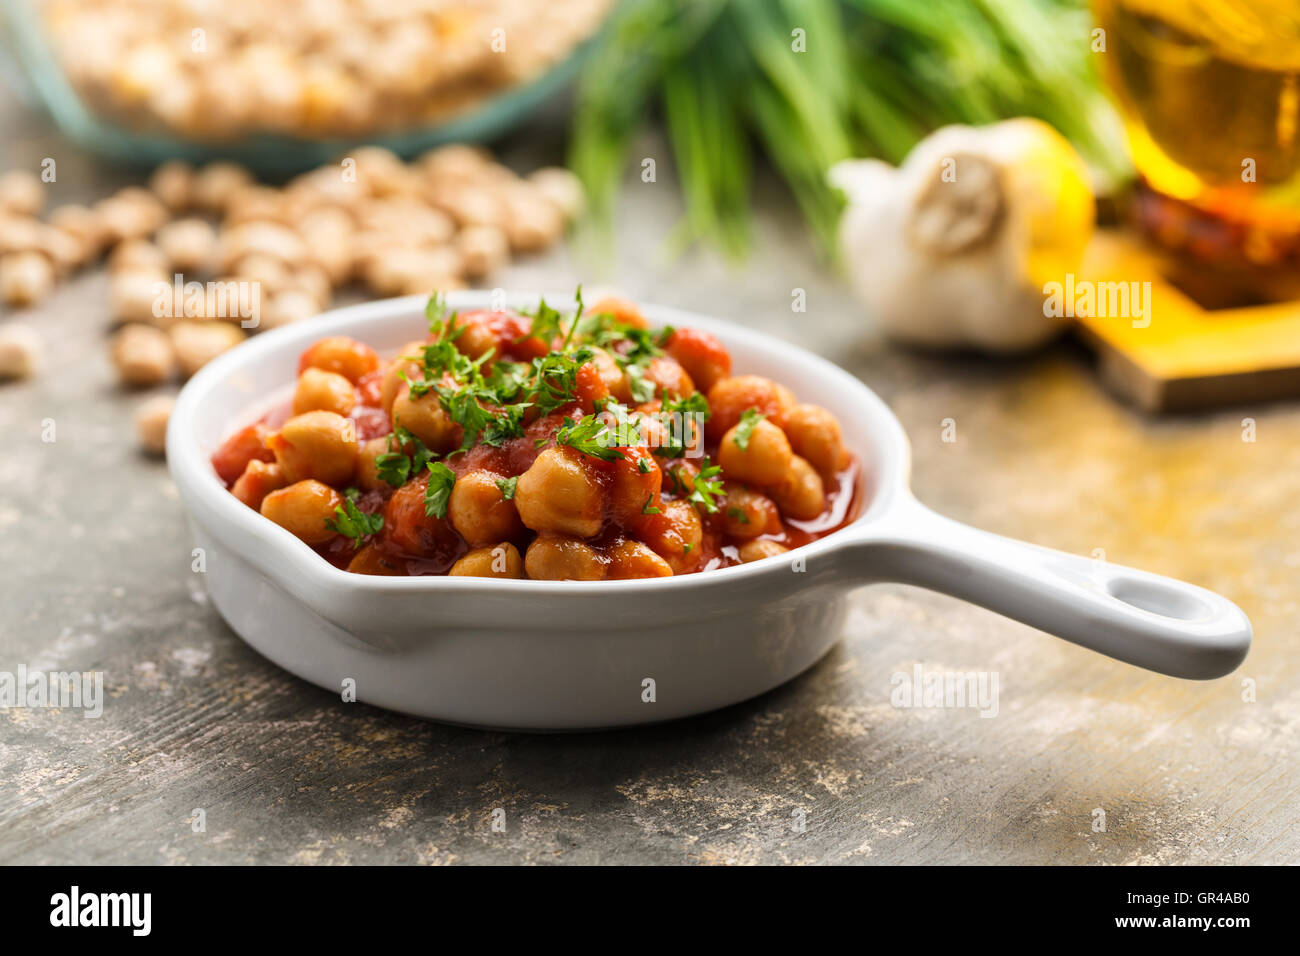 Indian curry with chickpeas and tomato sauce. - Stock Image